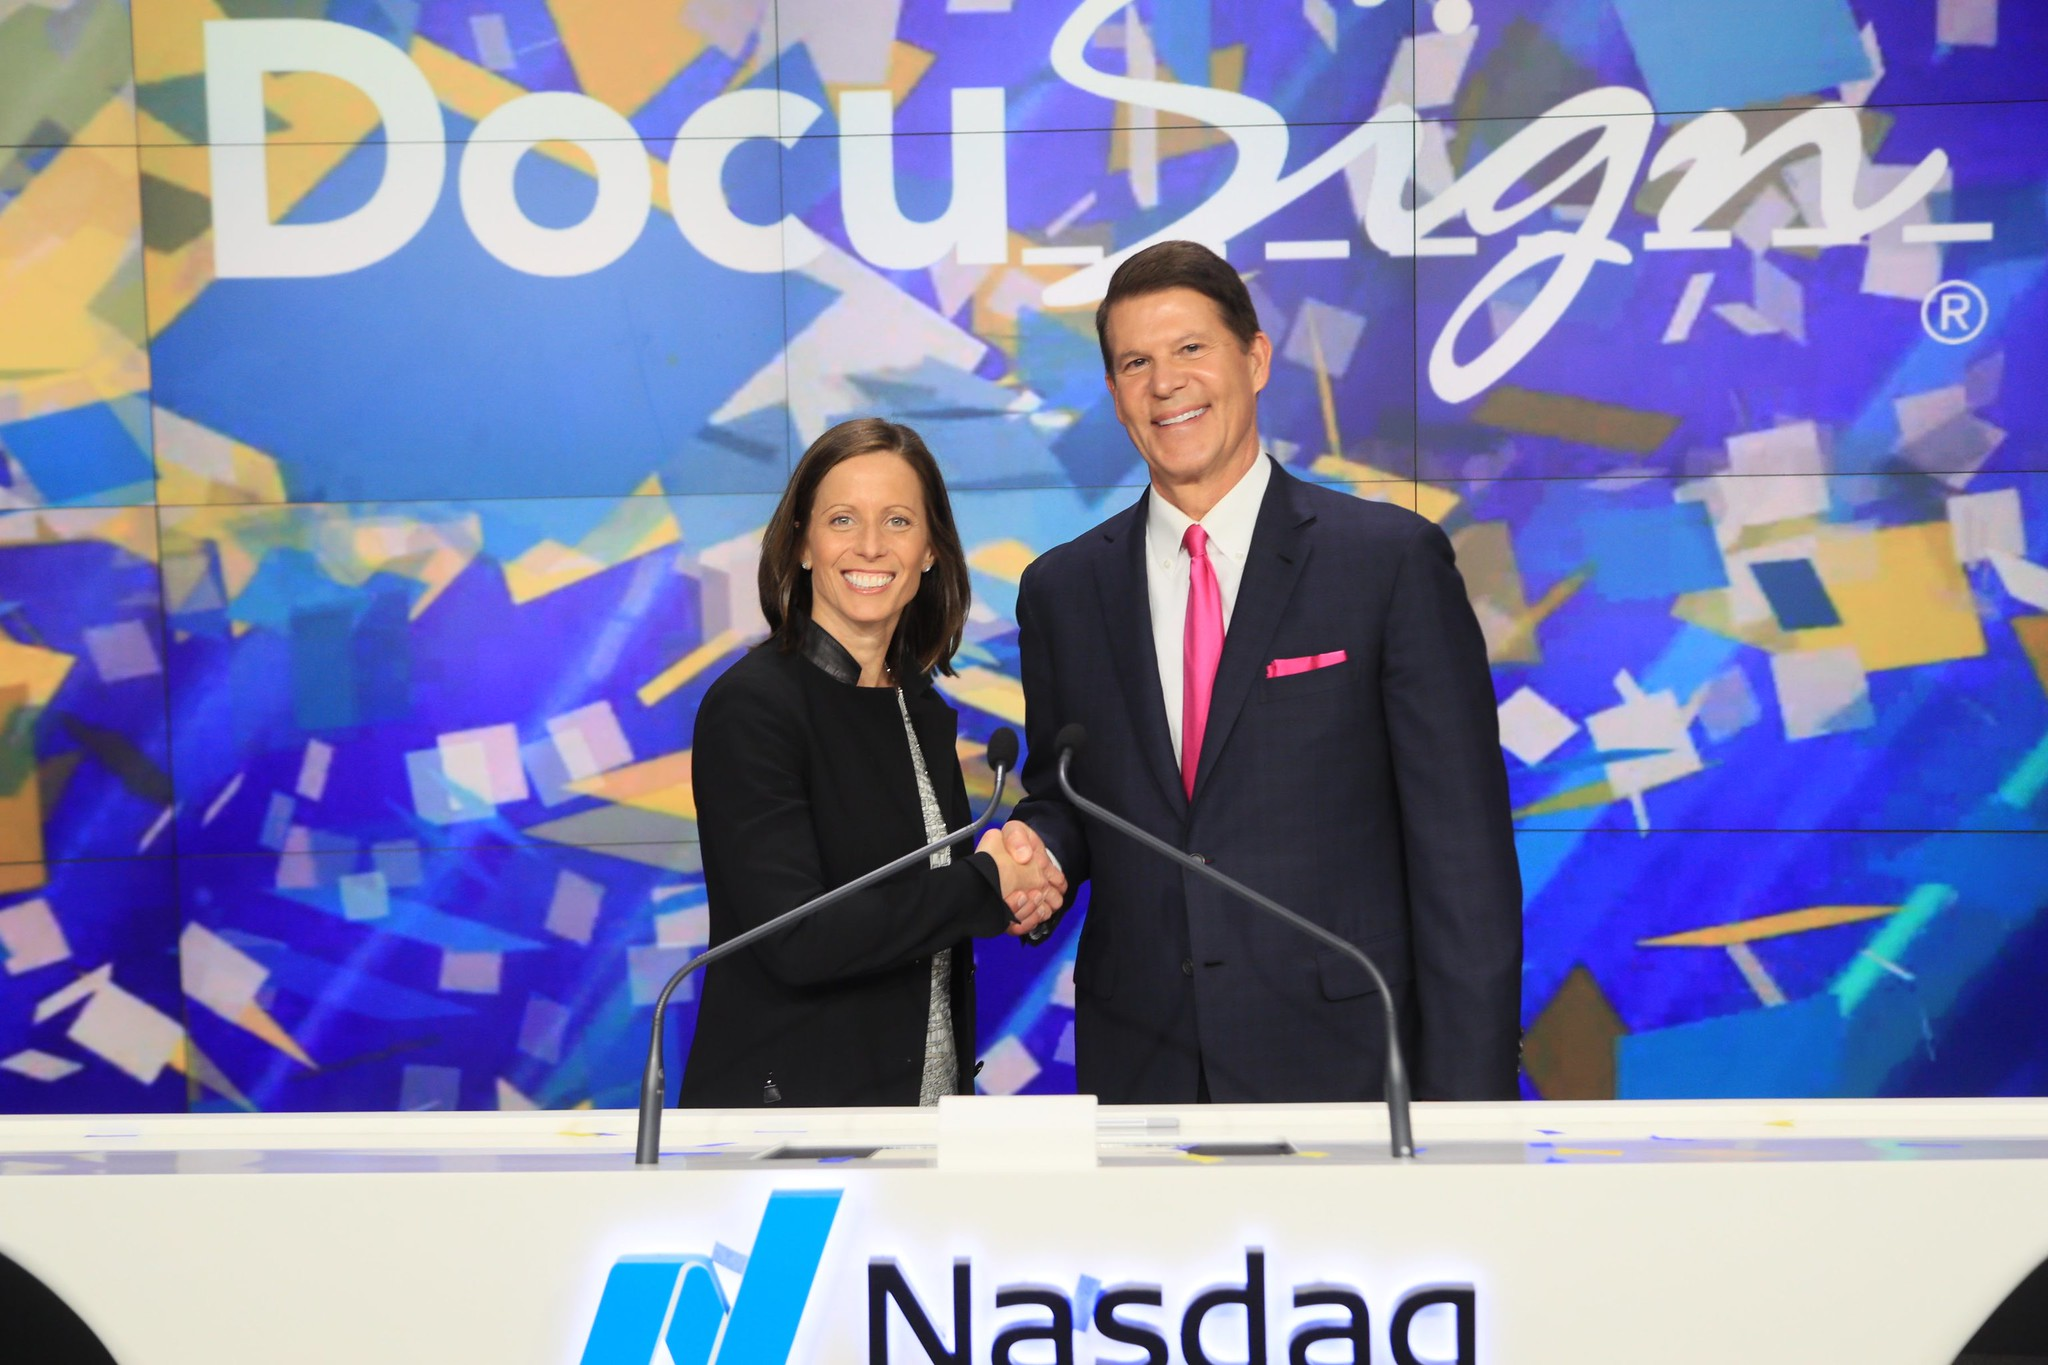 Krach with Nasdaq CEO Adena Friedman, congratulating him on his 3rd Nasdaq IPO